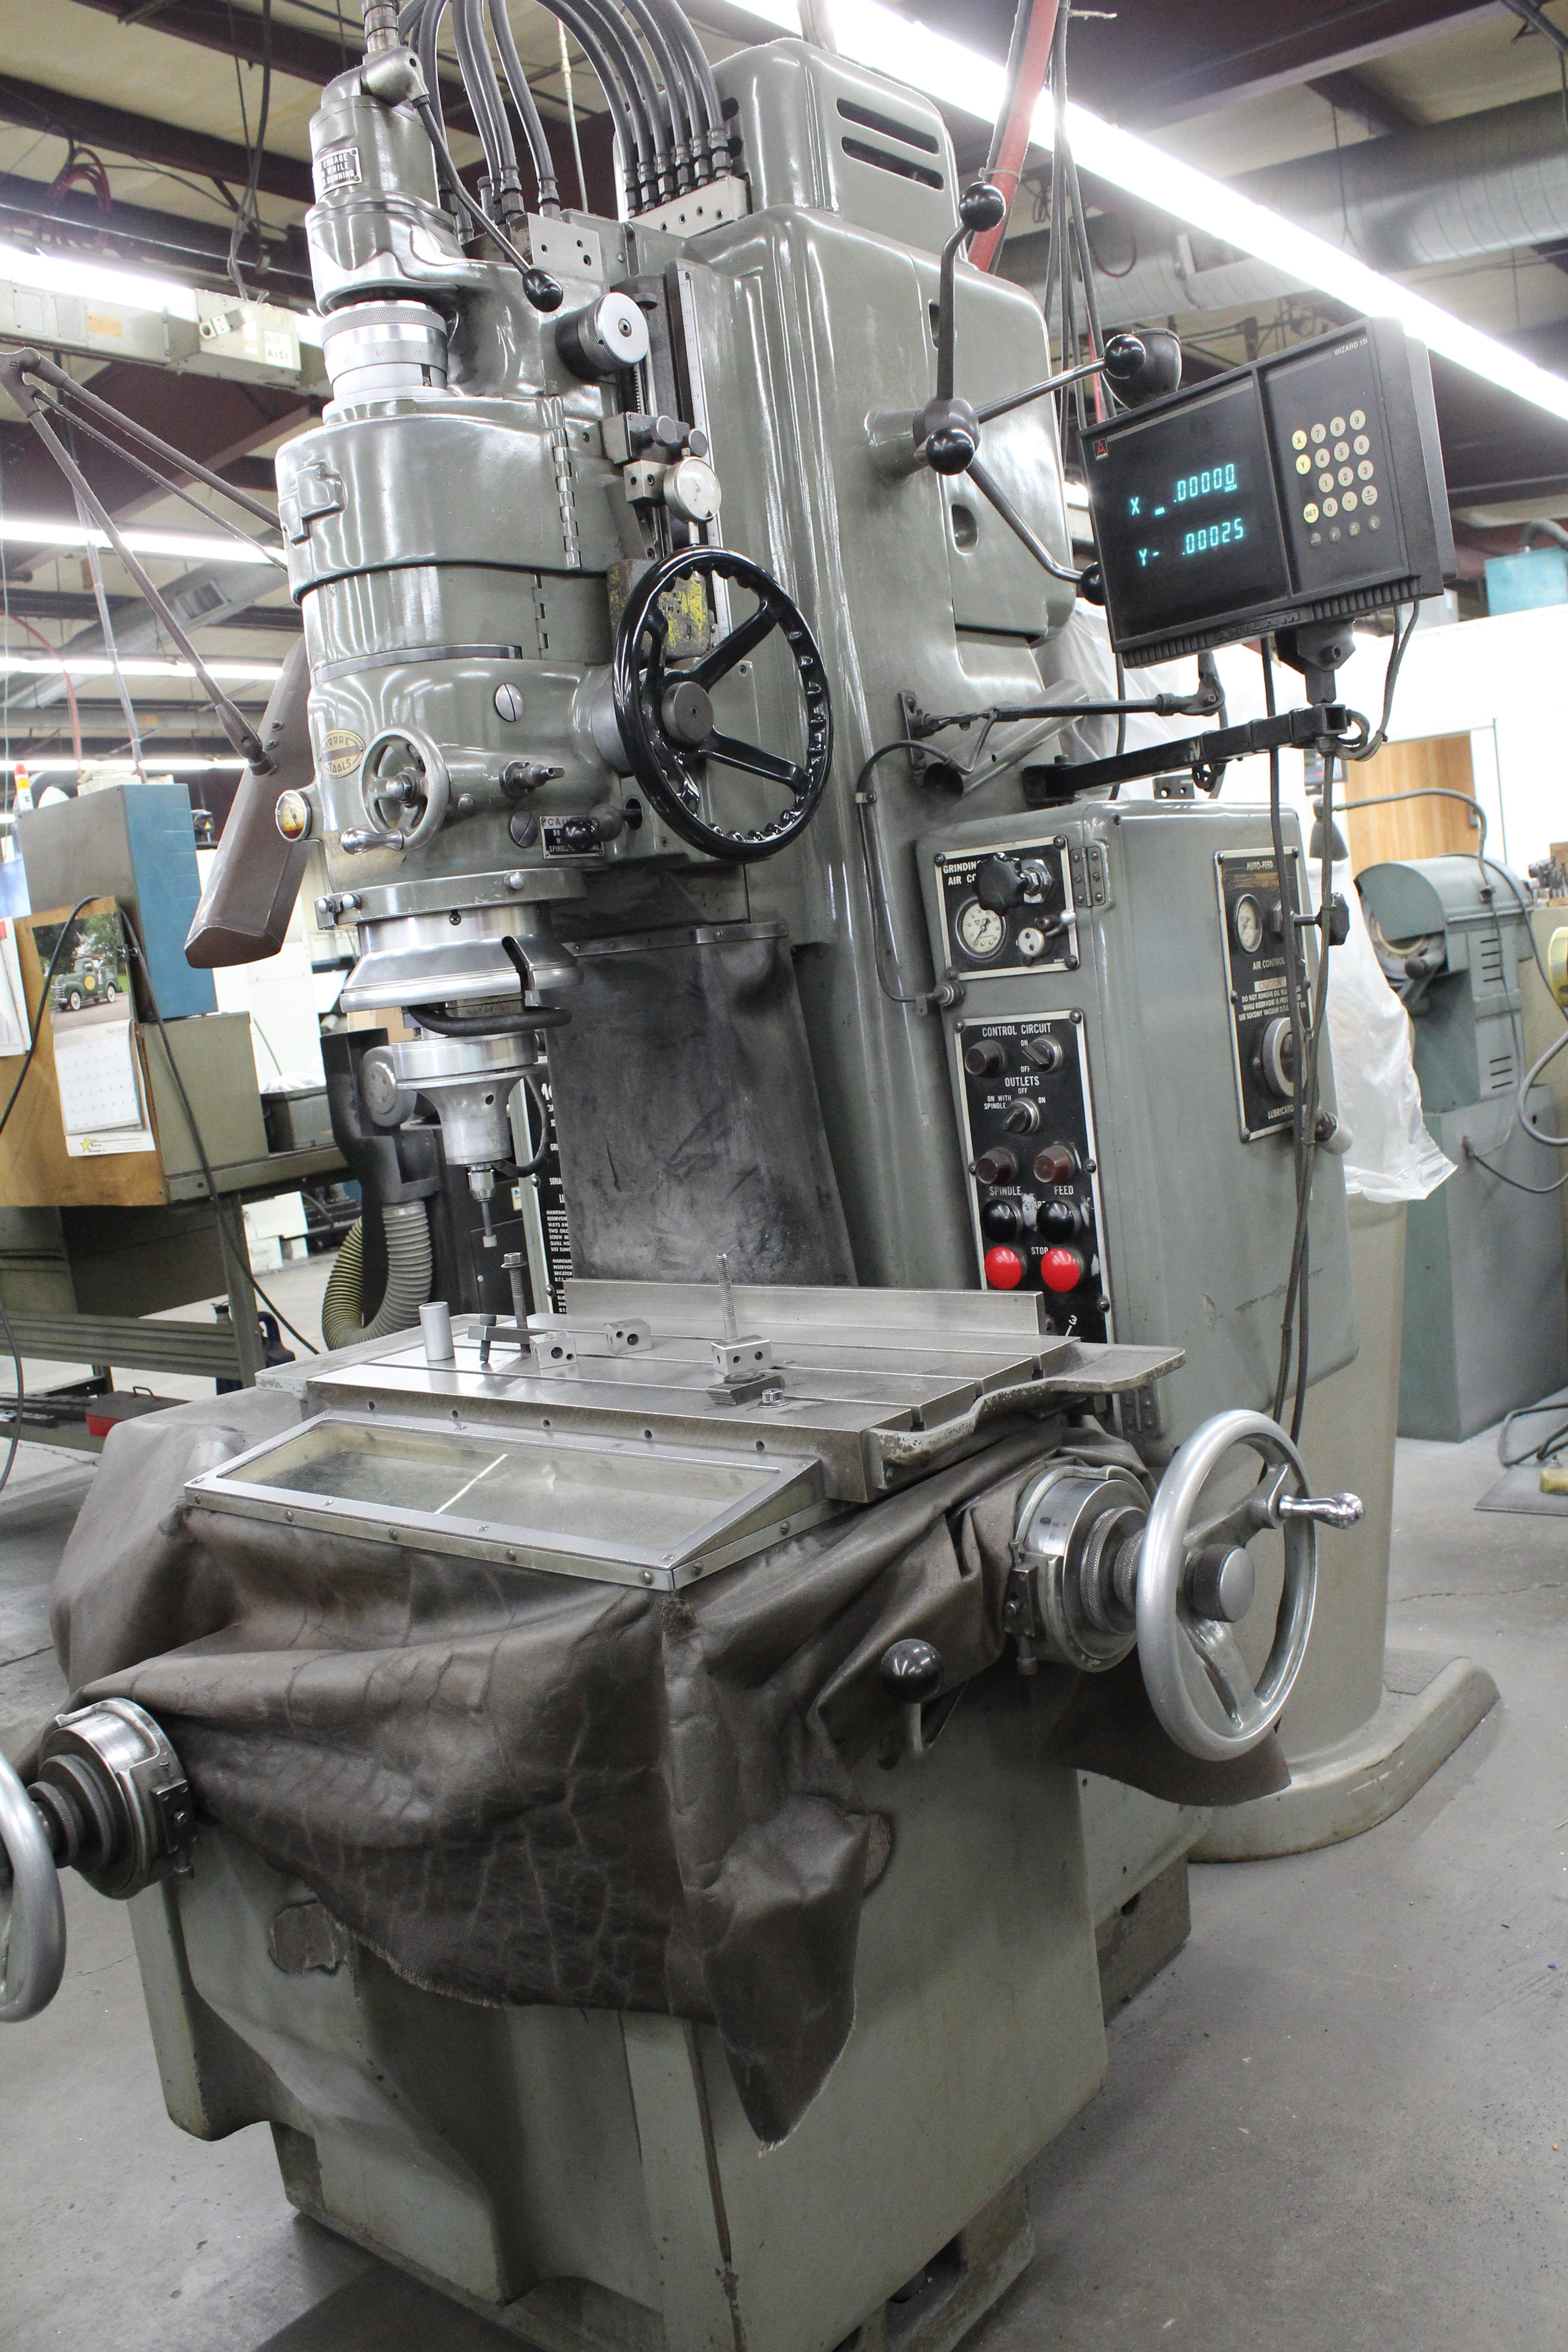 Powermatic Model 45 lathe manual